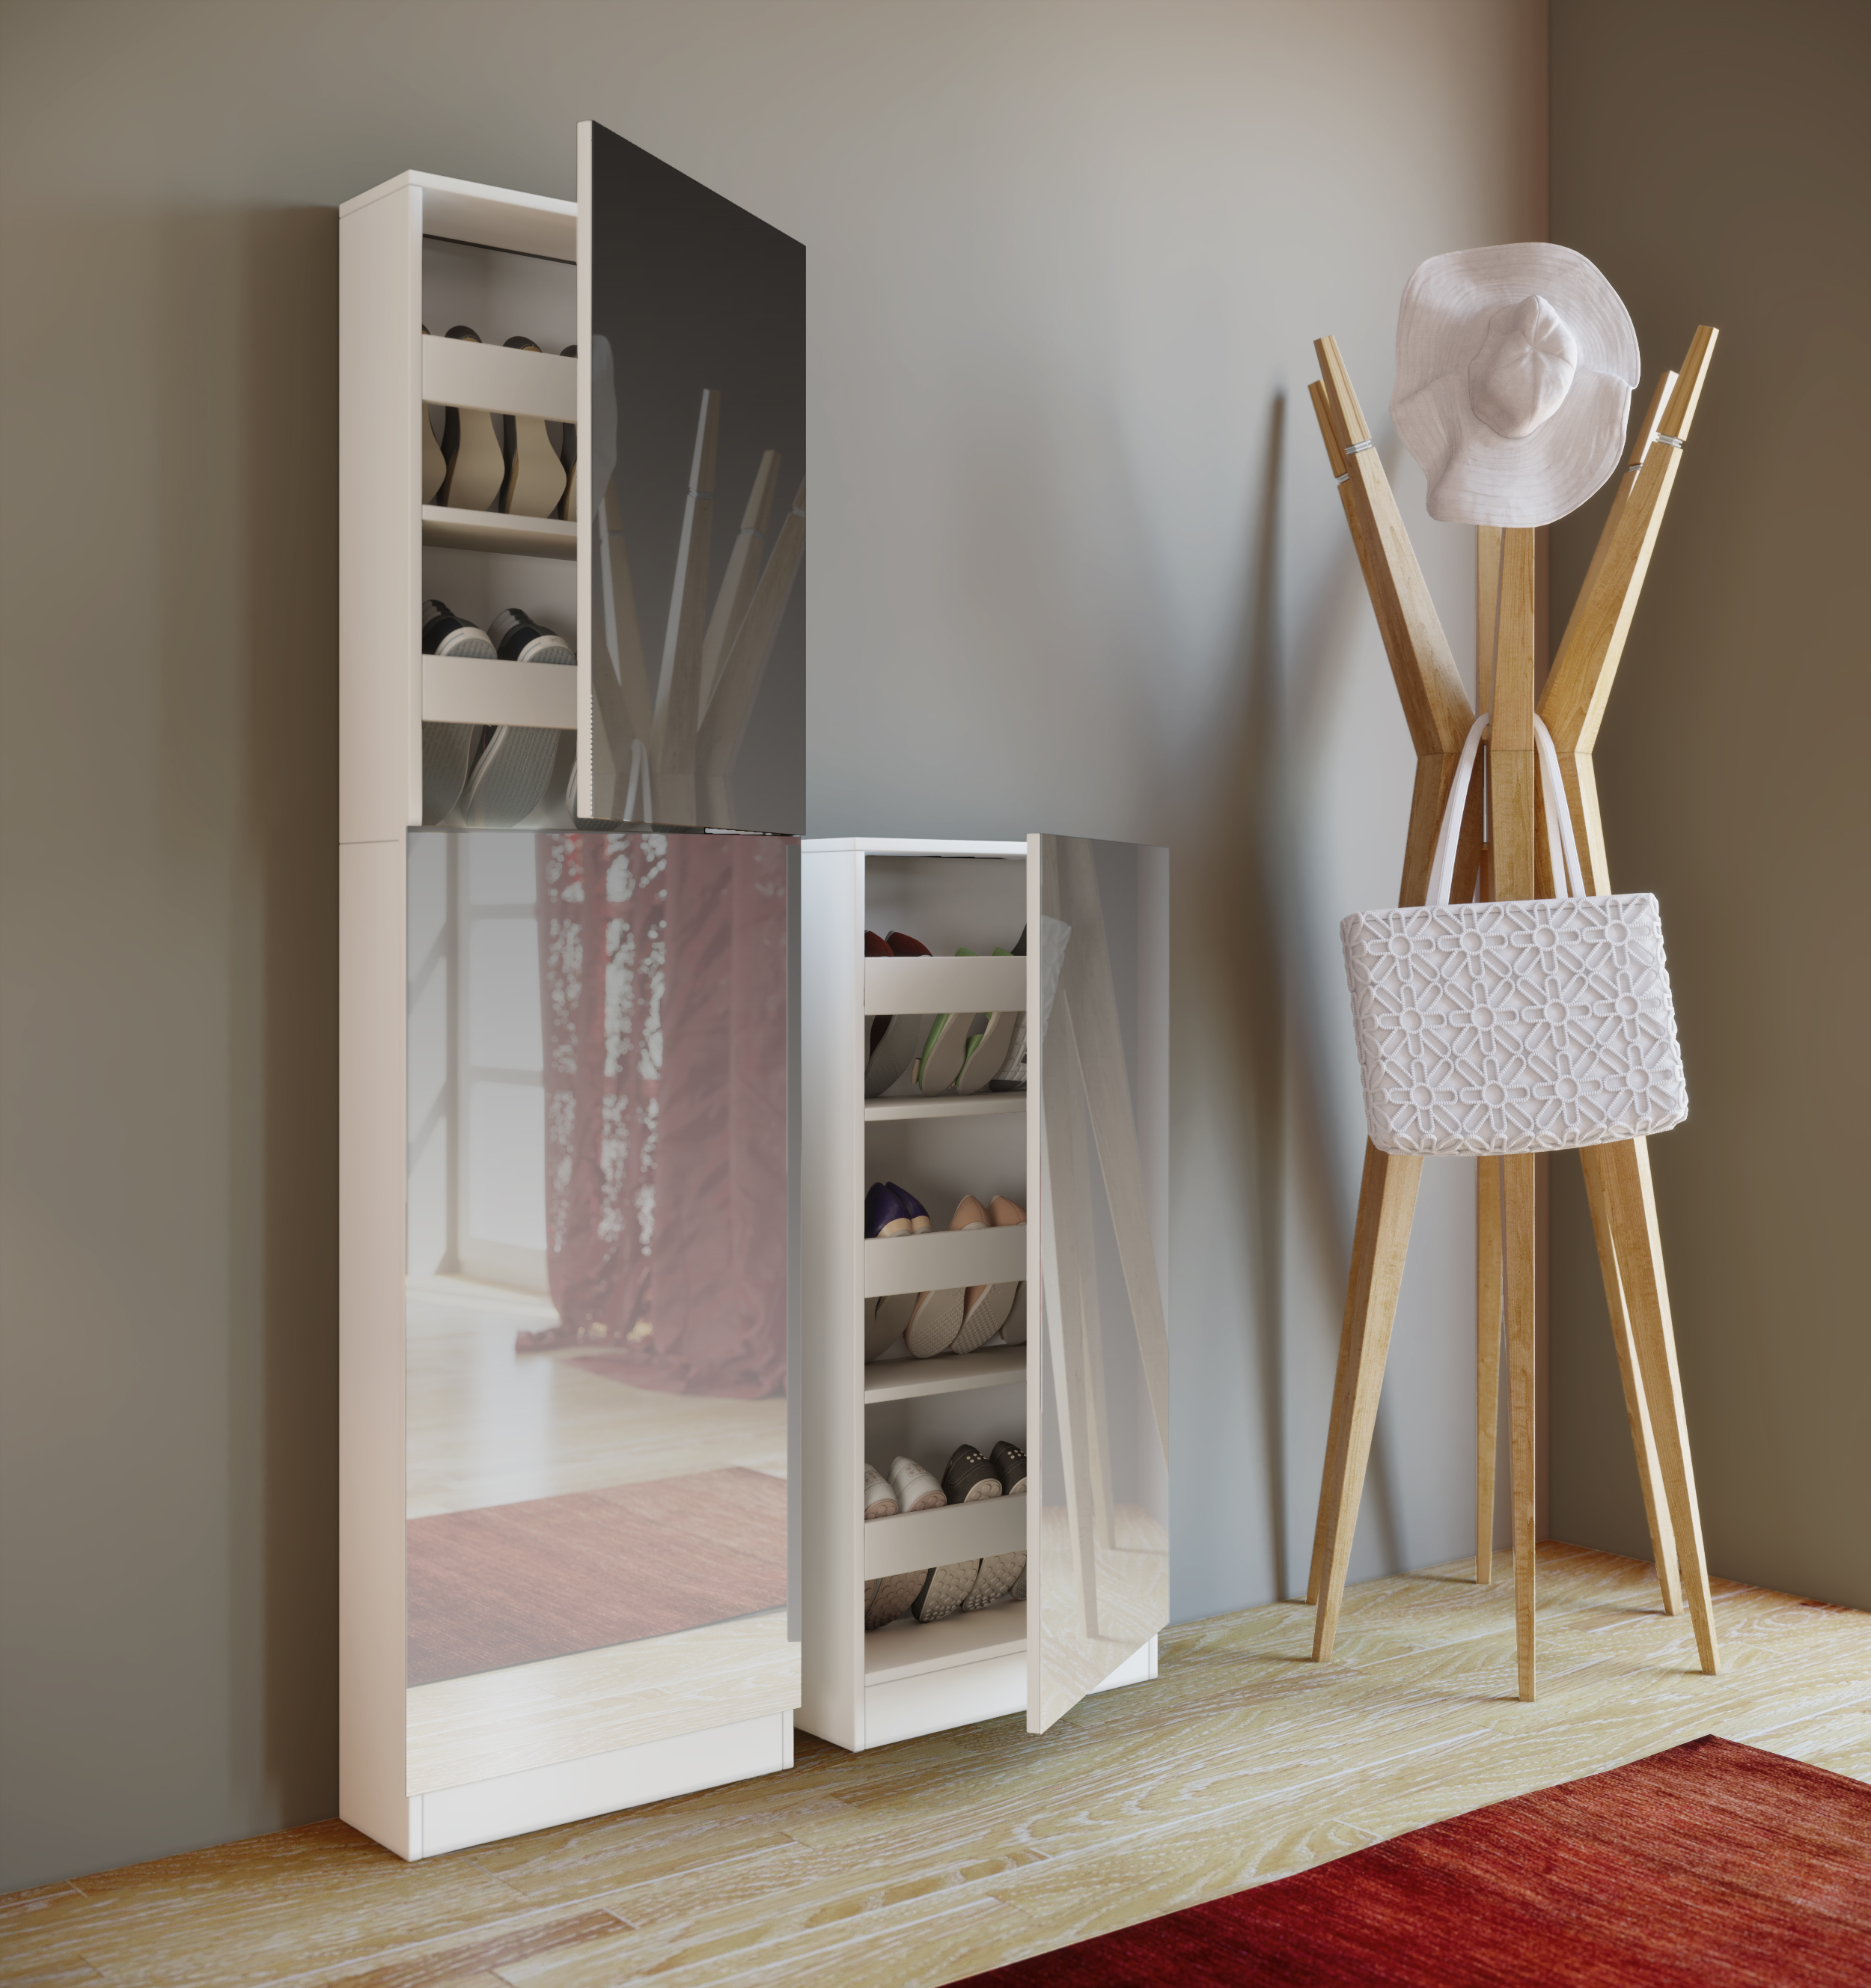 schuhschrank wei mit spiegel schuhablage schuhregal spiegelschrank ebay. Black Bedroom Furniture Sets. Home Design Ideas